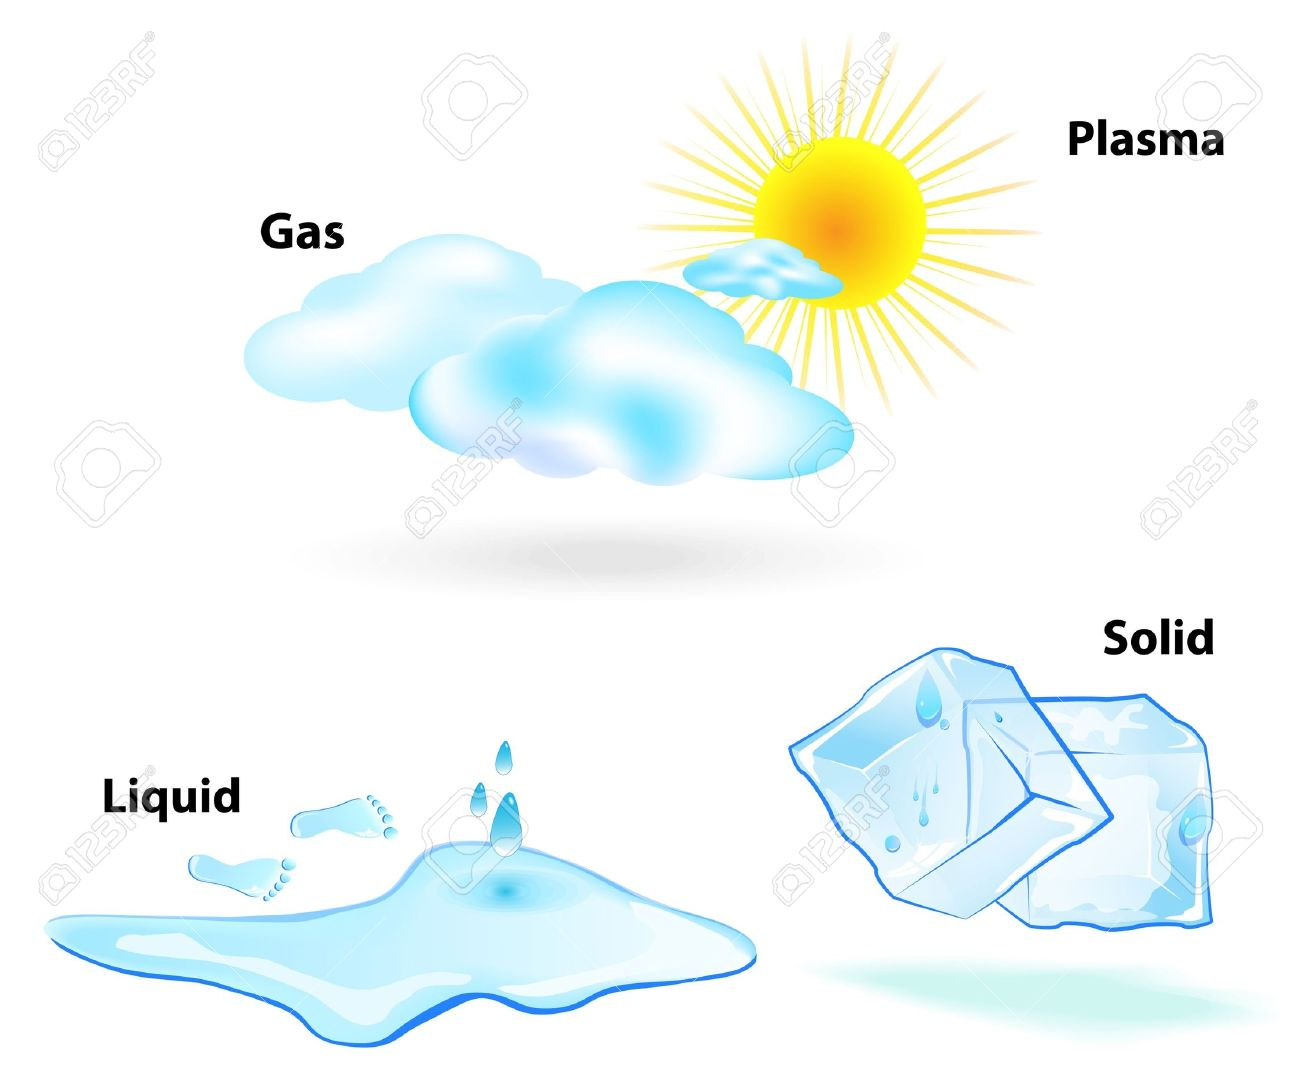 Four states of matter are observable in everyday life  solid, liquid, gas, and plasma  Sun, clouds, drop, ice cubes, water Stock Vector - 17591962